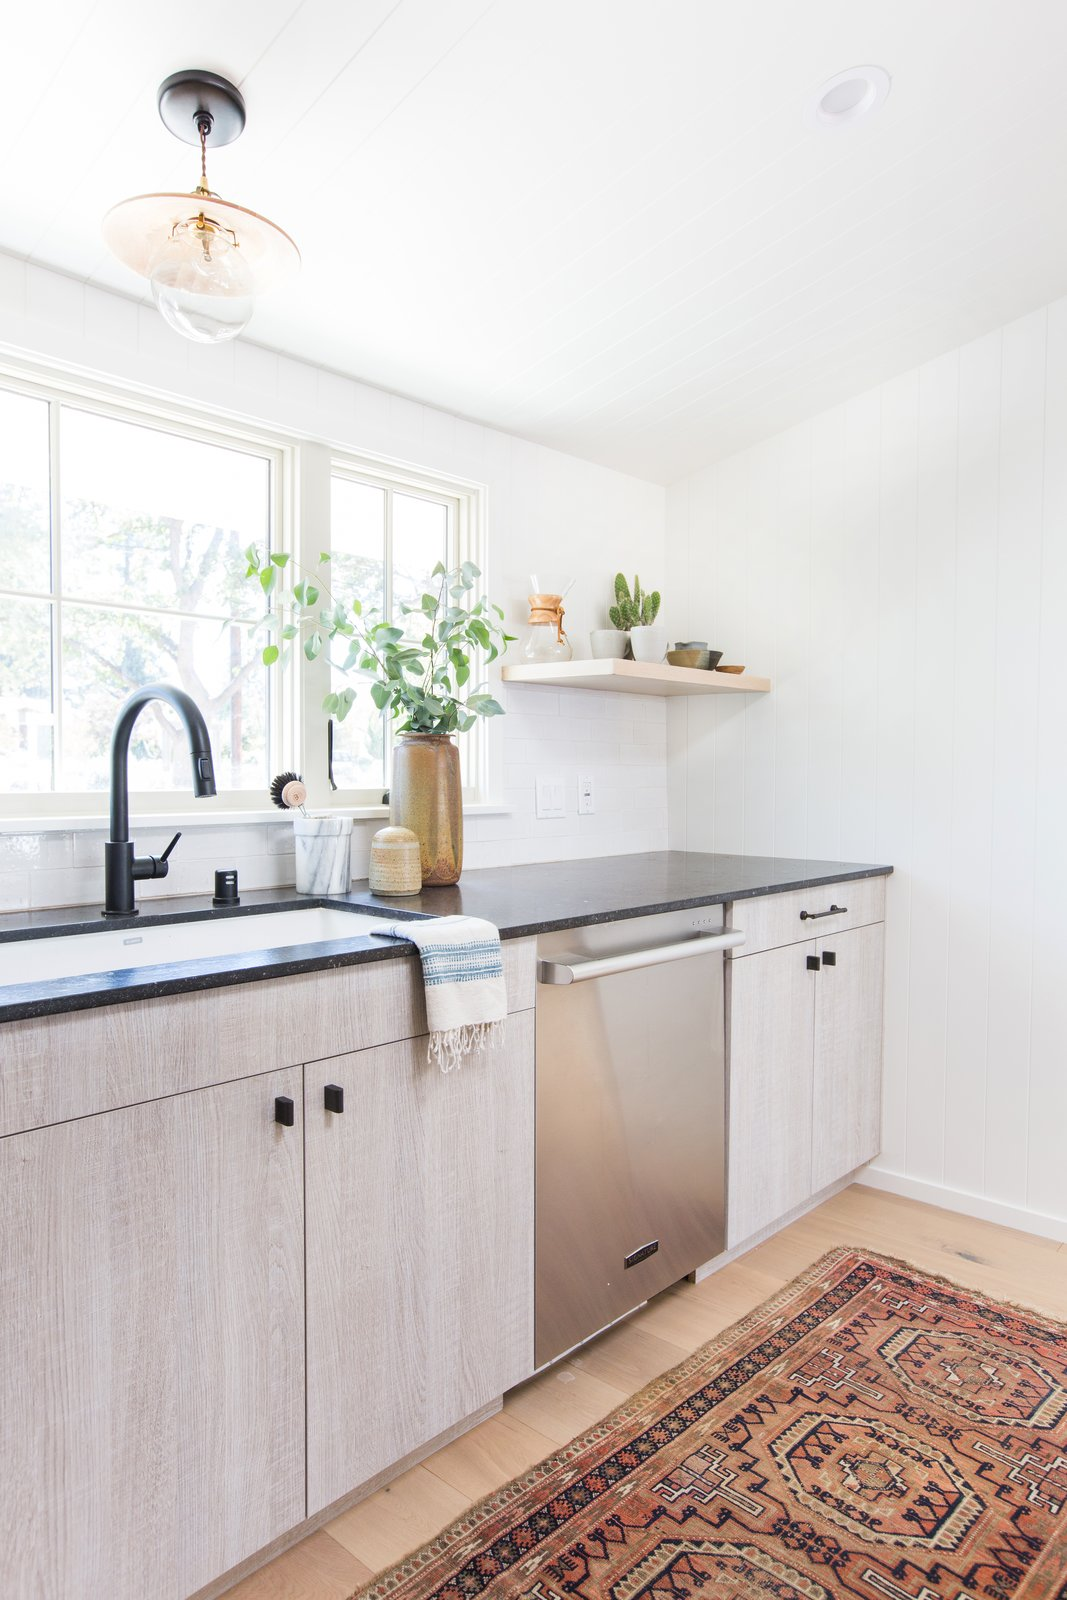 """Designer Amber Lewis's """"No Ordinary Kitchen"""" renovation features a muted palette inspired by clean Scandinavian design. Appliances by Signature Kitchen Suite, such as the dishwasher pictured here, add both style and functionality.  Hit Refresh by Dwell"""